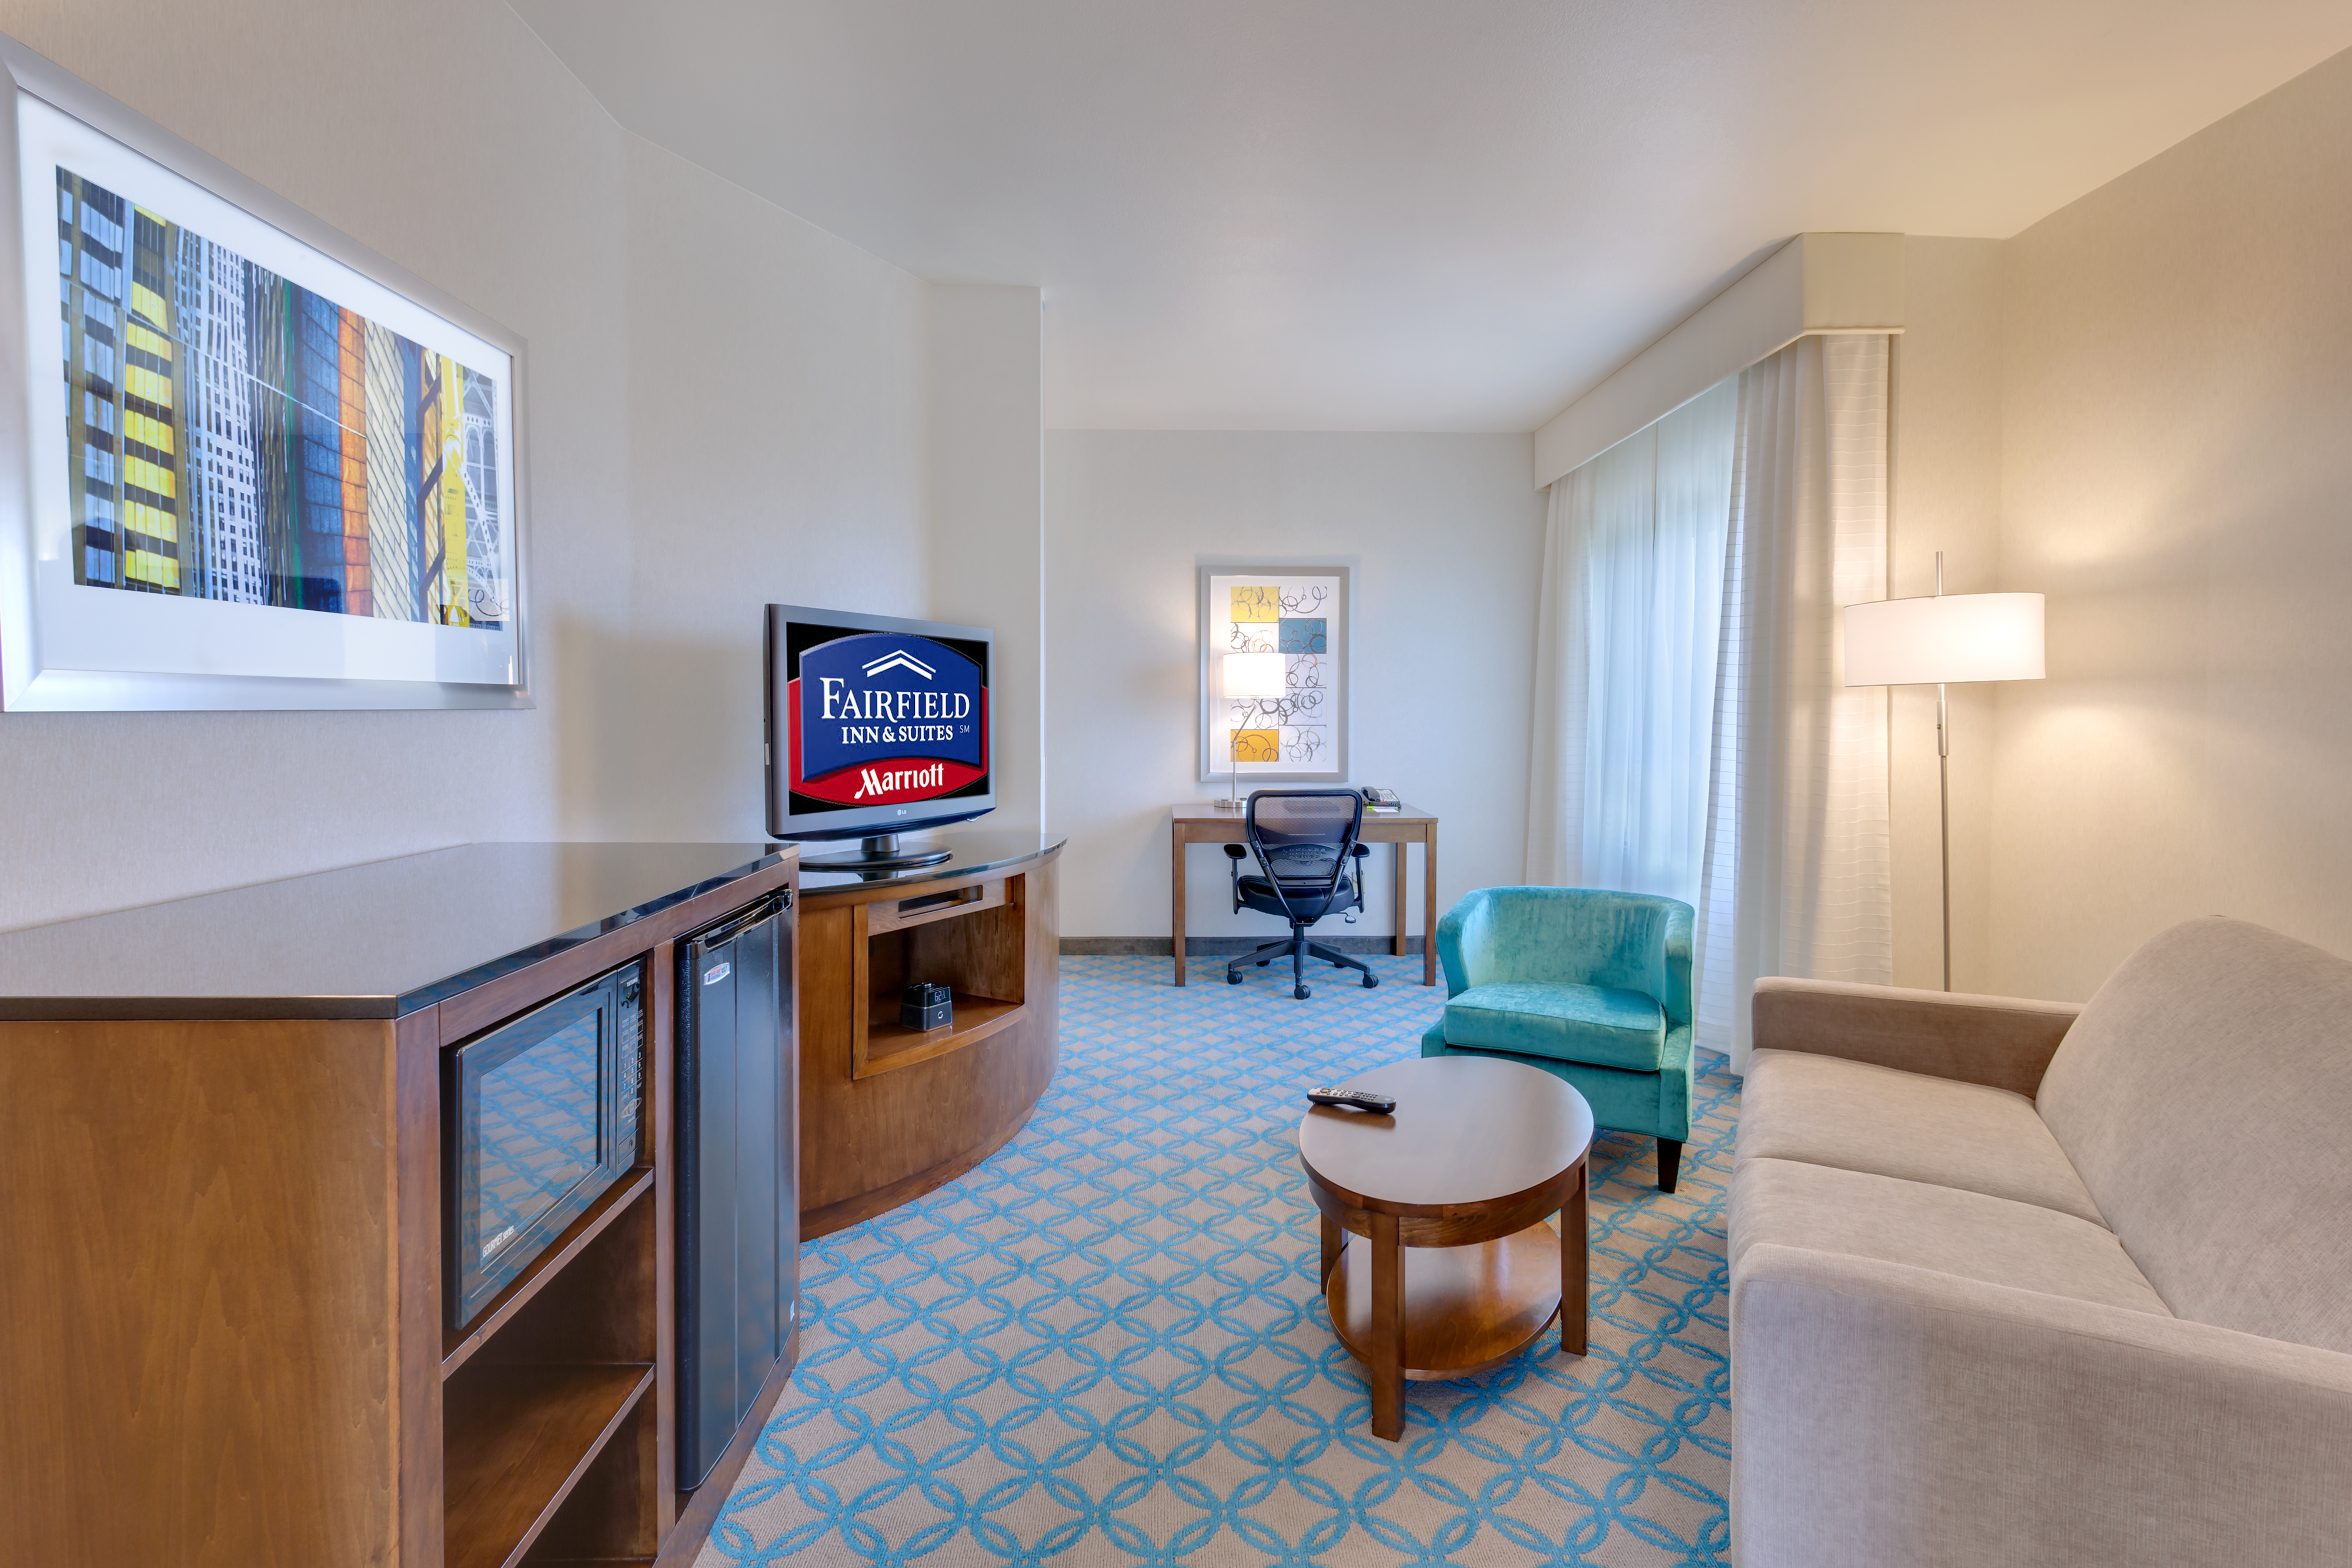 https://www.hotelsbyday.com/_data/default-hotel_image/1/6276/sfome-suite-living-area-view.jpg